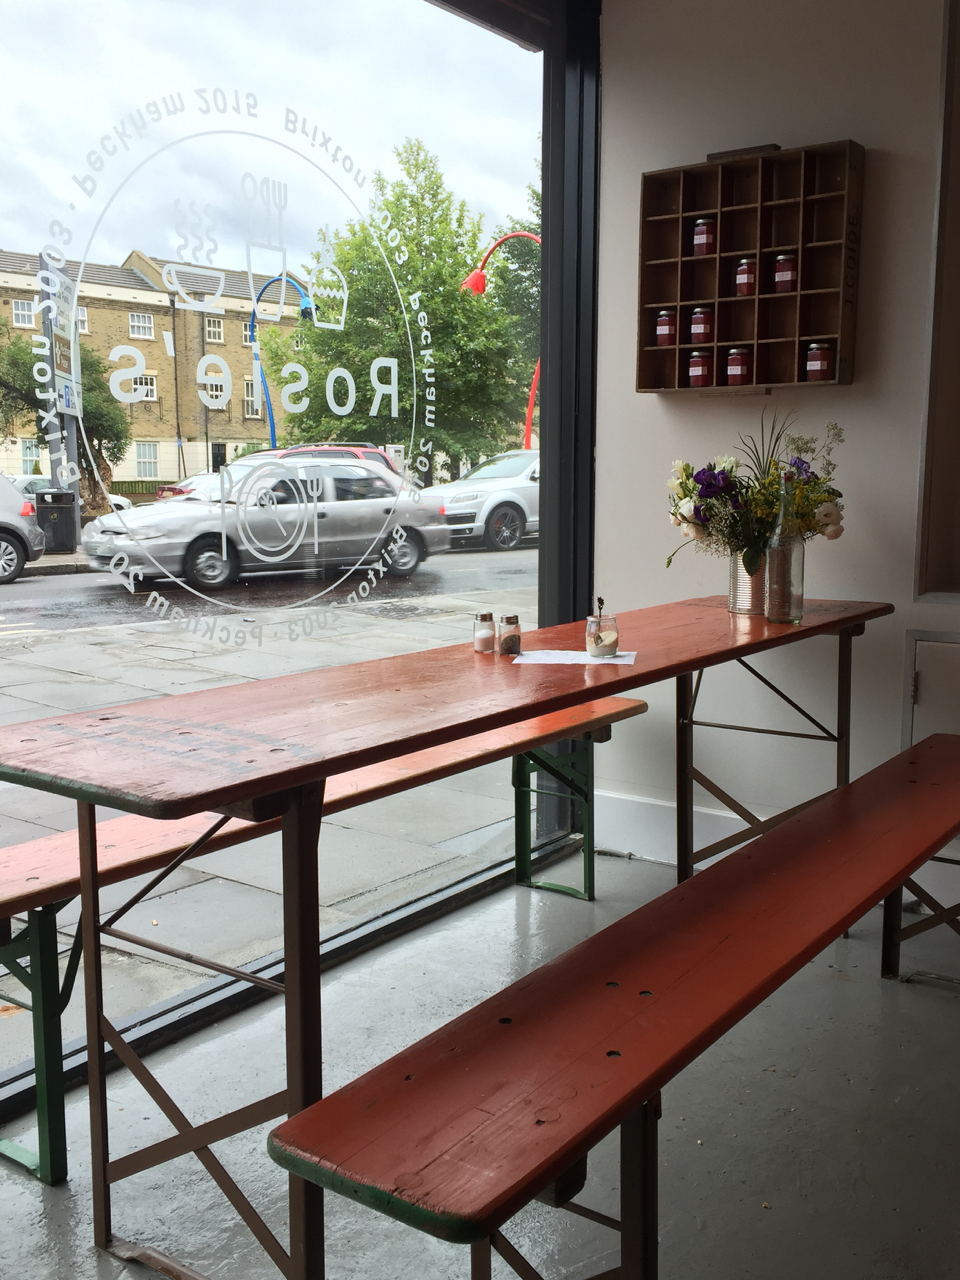 Rosies cafe Peckham gastrogays window seat